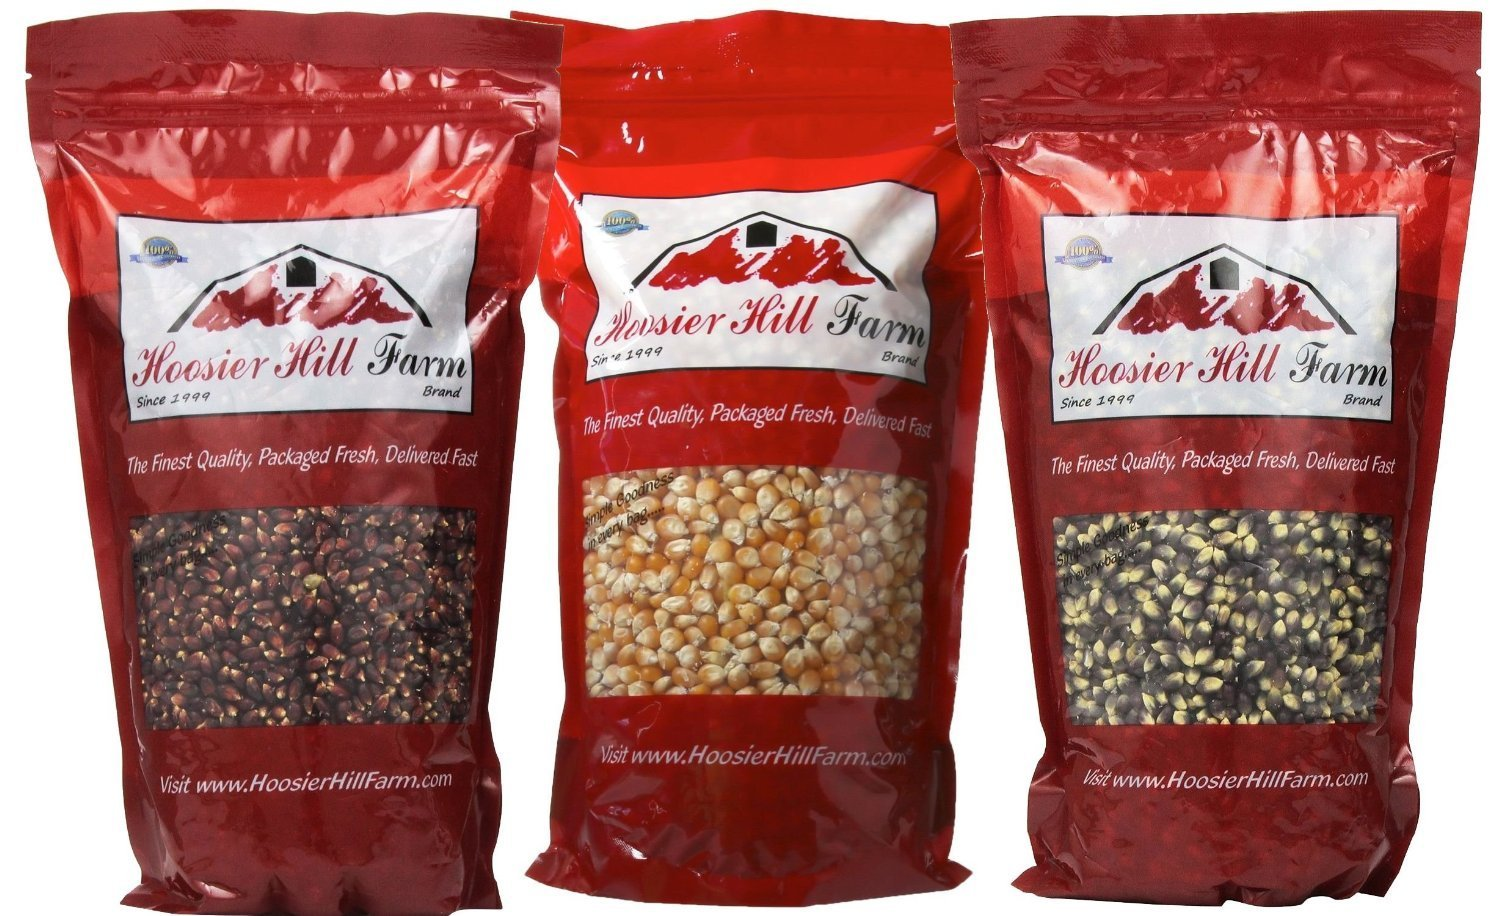 Hoosier Hill Farm All American (Red, White, & Blue) Gourmet Popcorn Set (4.5 lbs)